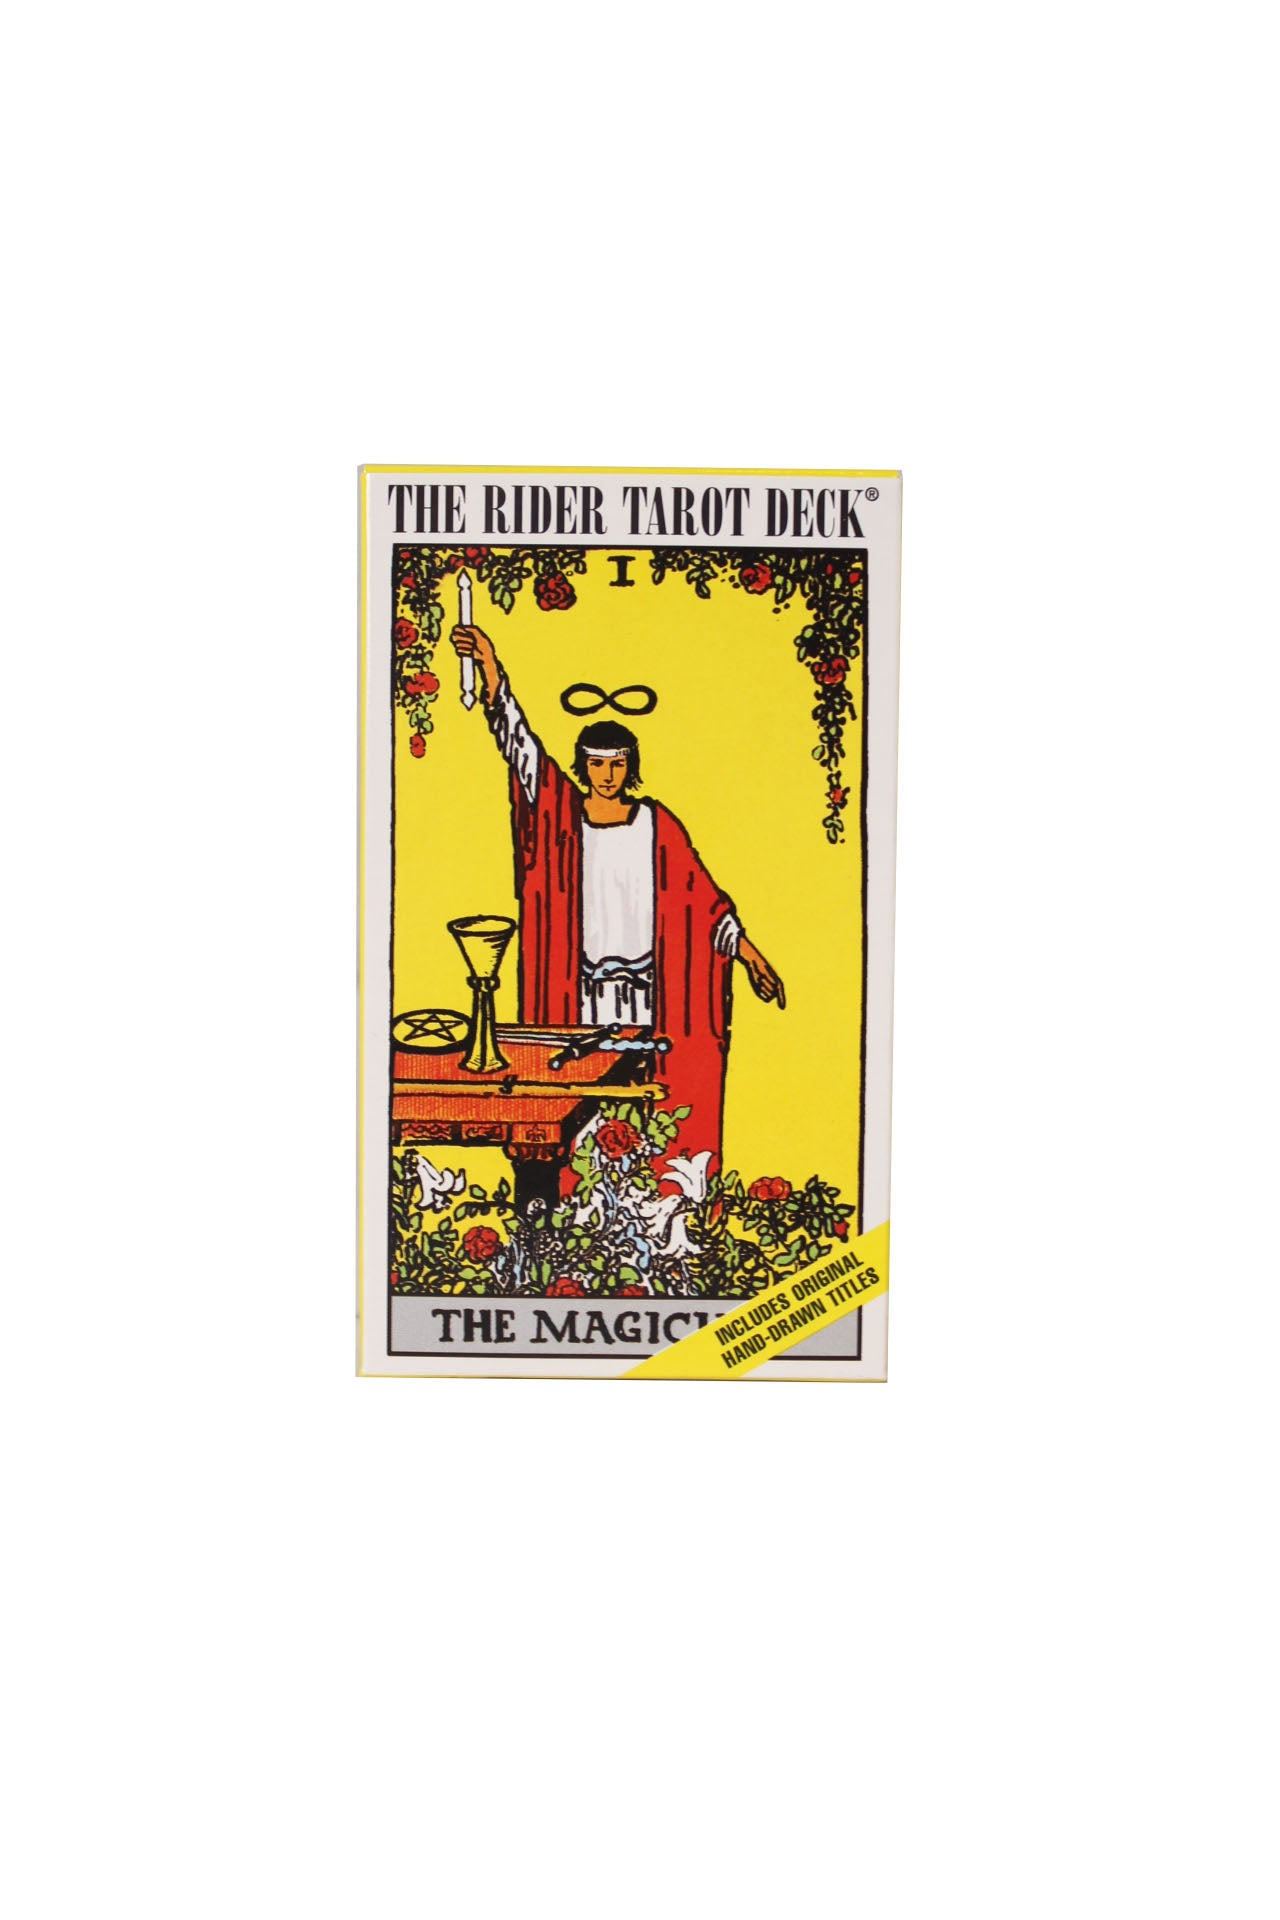 the rider tarot deck by arthur edward waite.